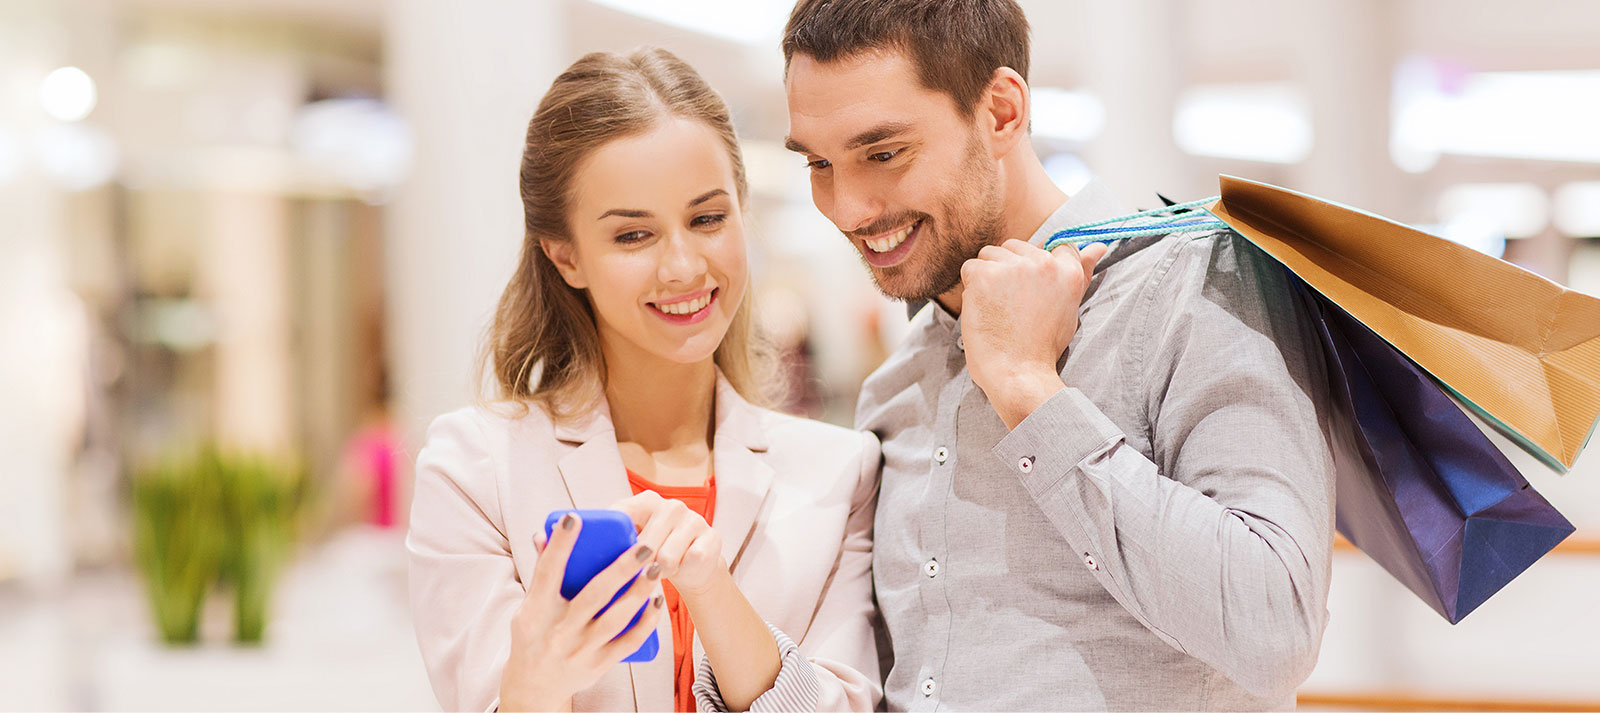 Unifying the customer experience during this festive shopping season